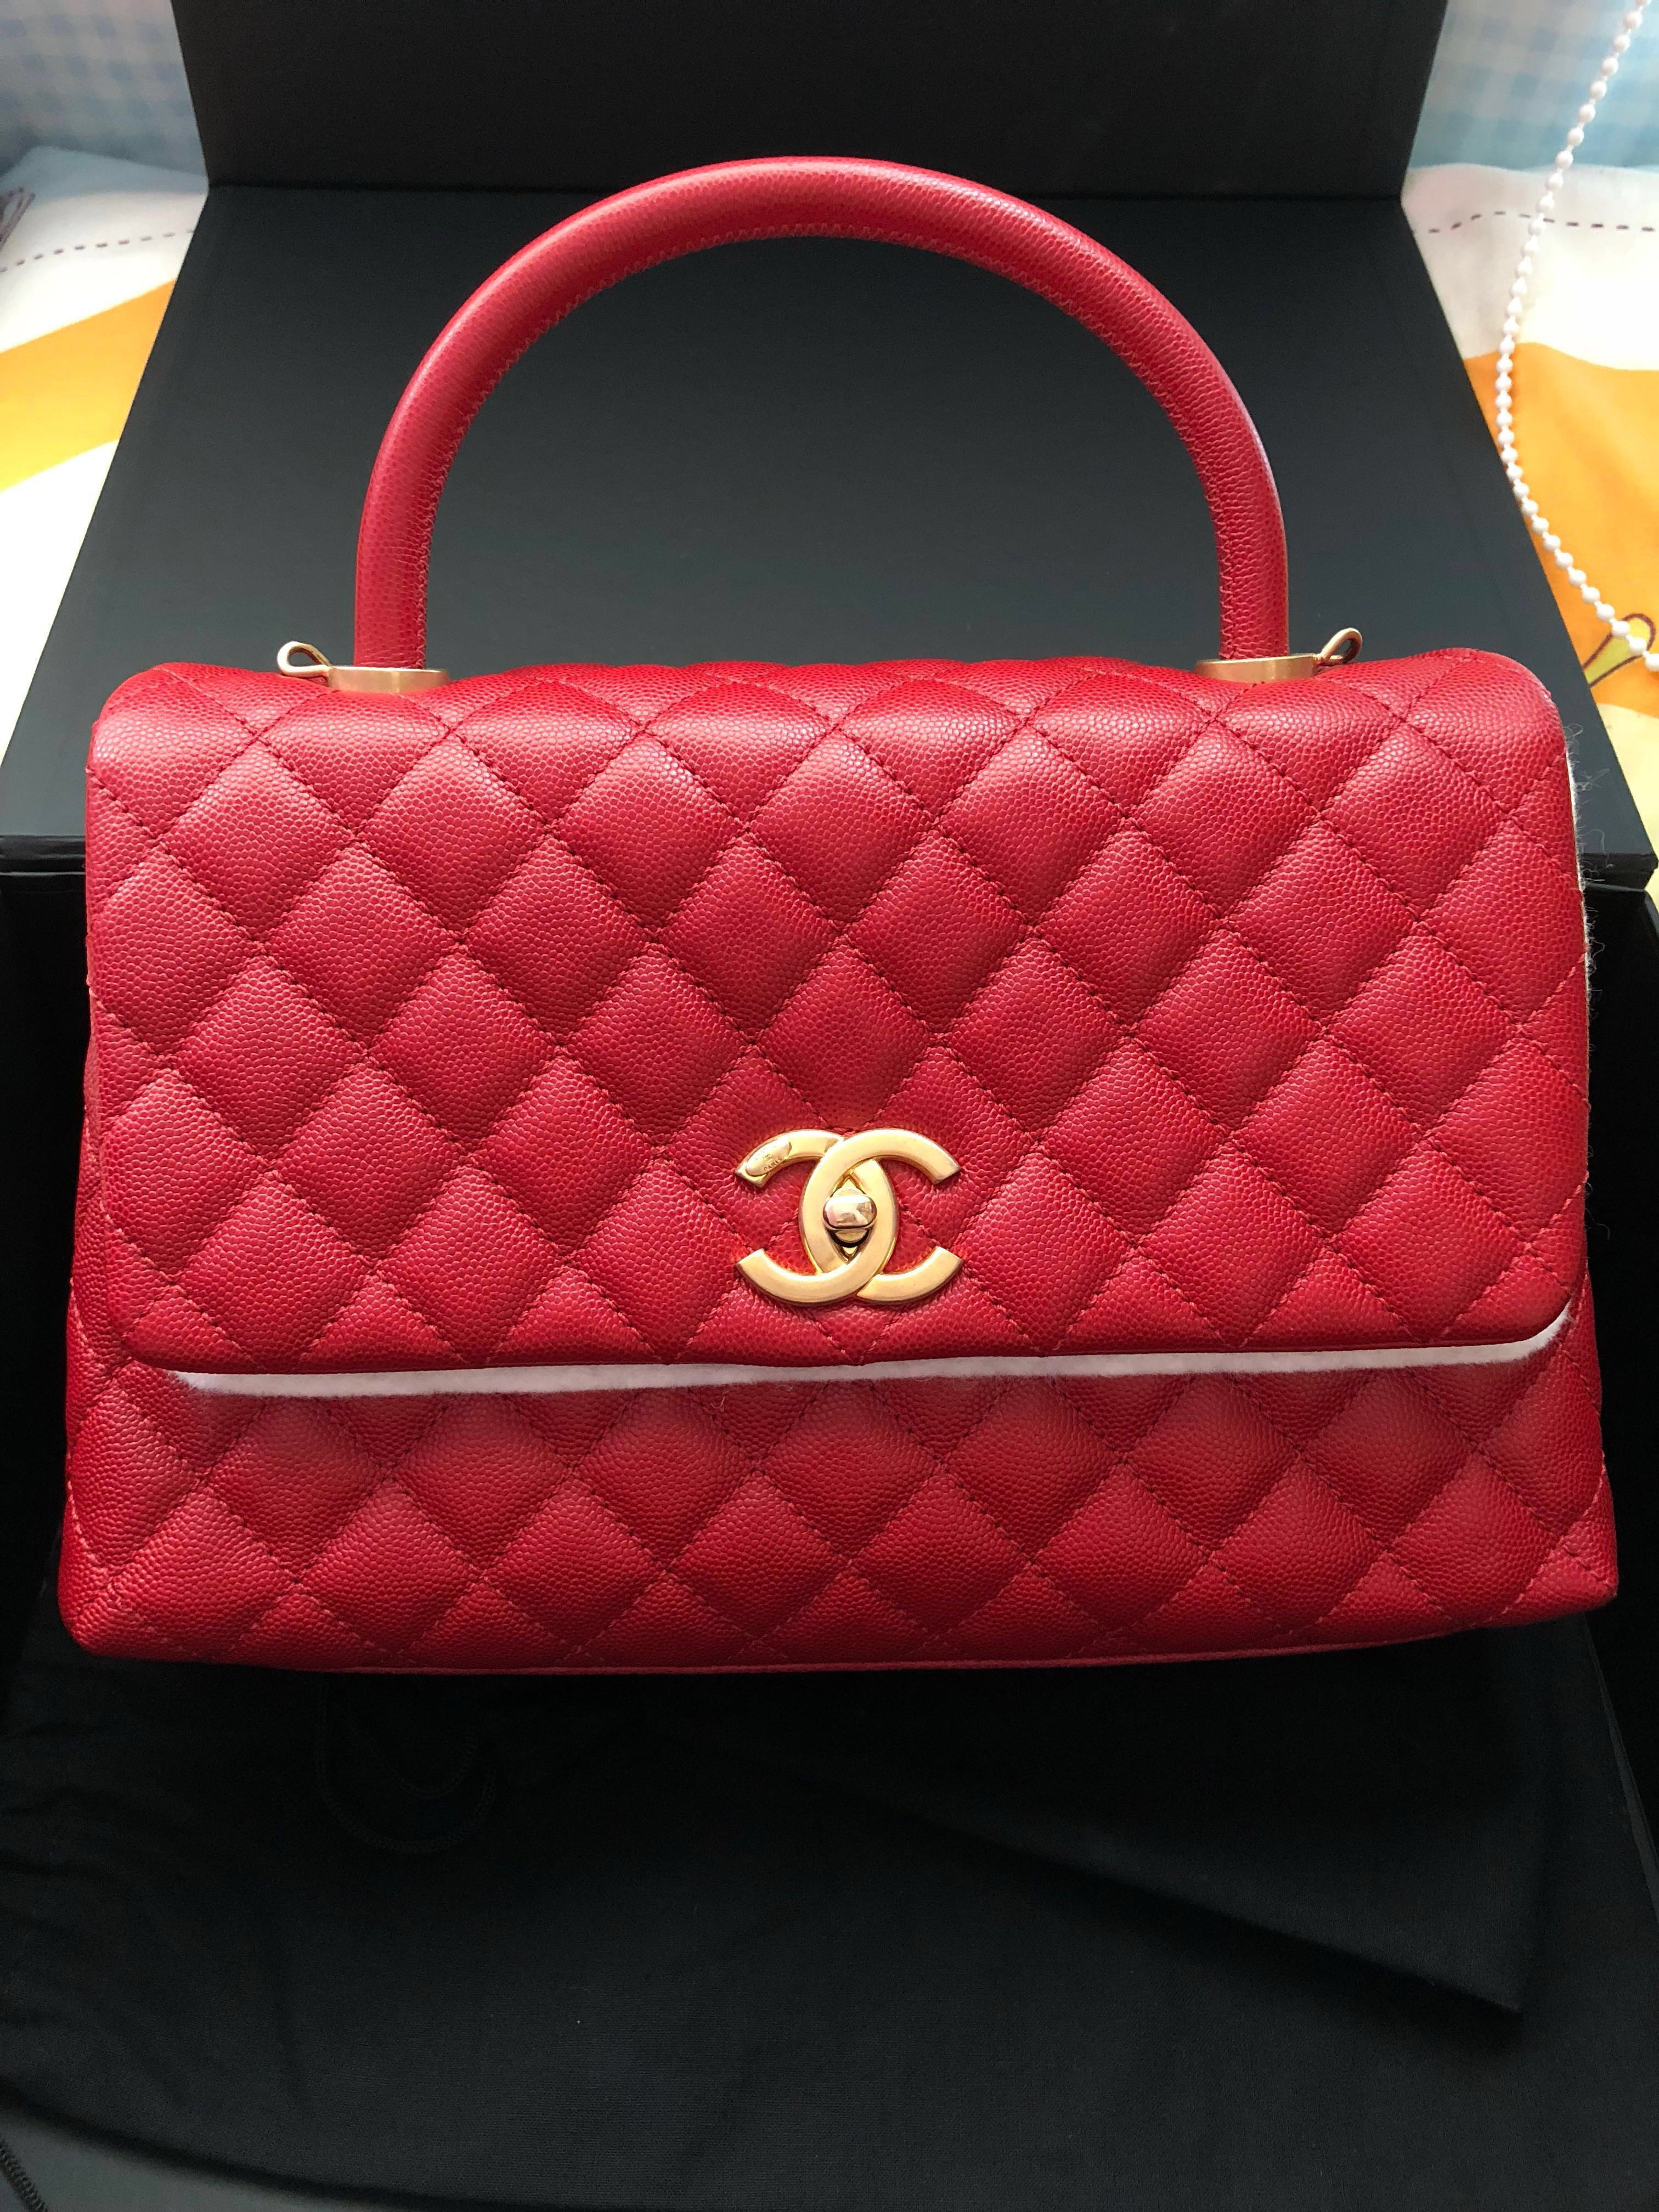 78751fcab9bd23 (To collect at MBS boutique) Chanel Coco Handle GHW 29cm, Luxury, Bags &  Wallets, Handbags on Carousell